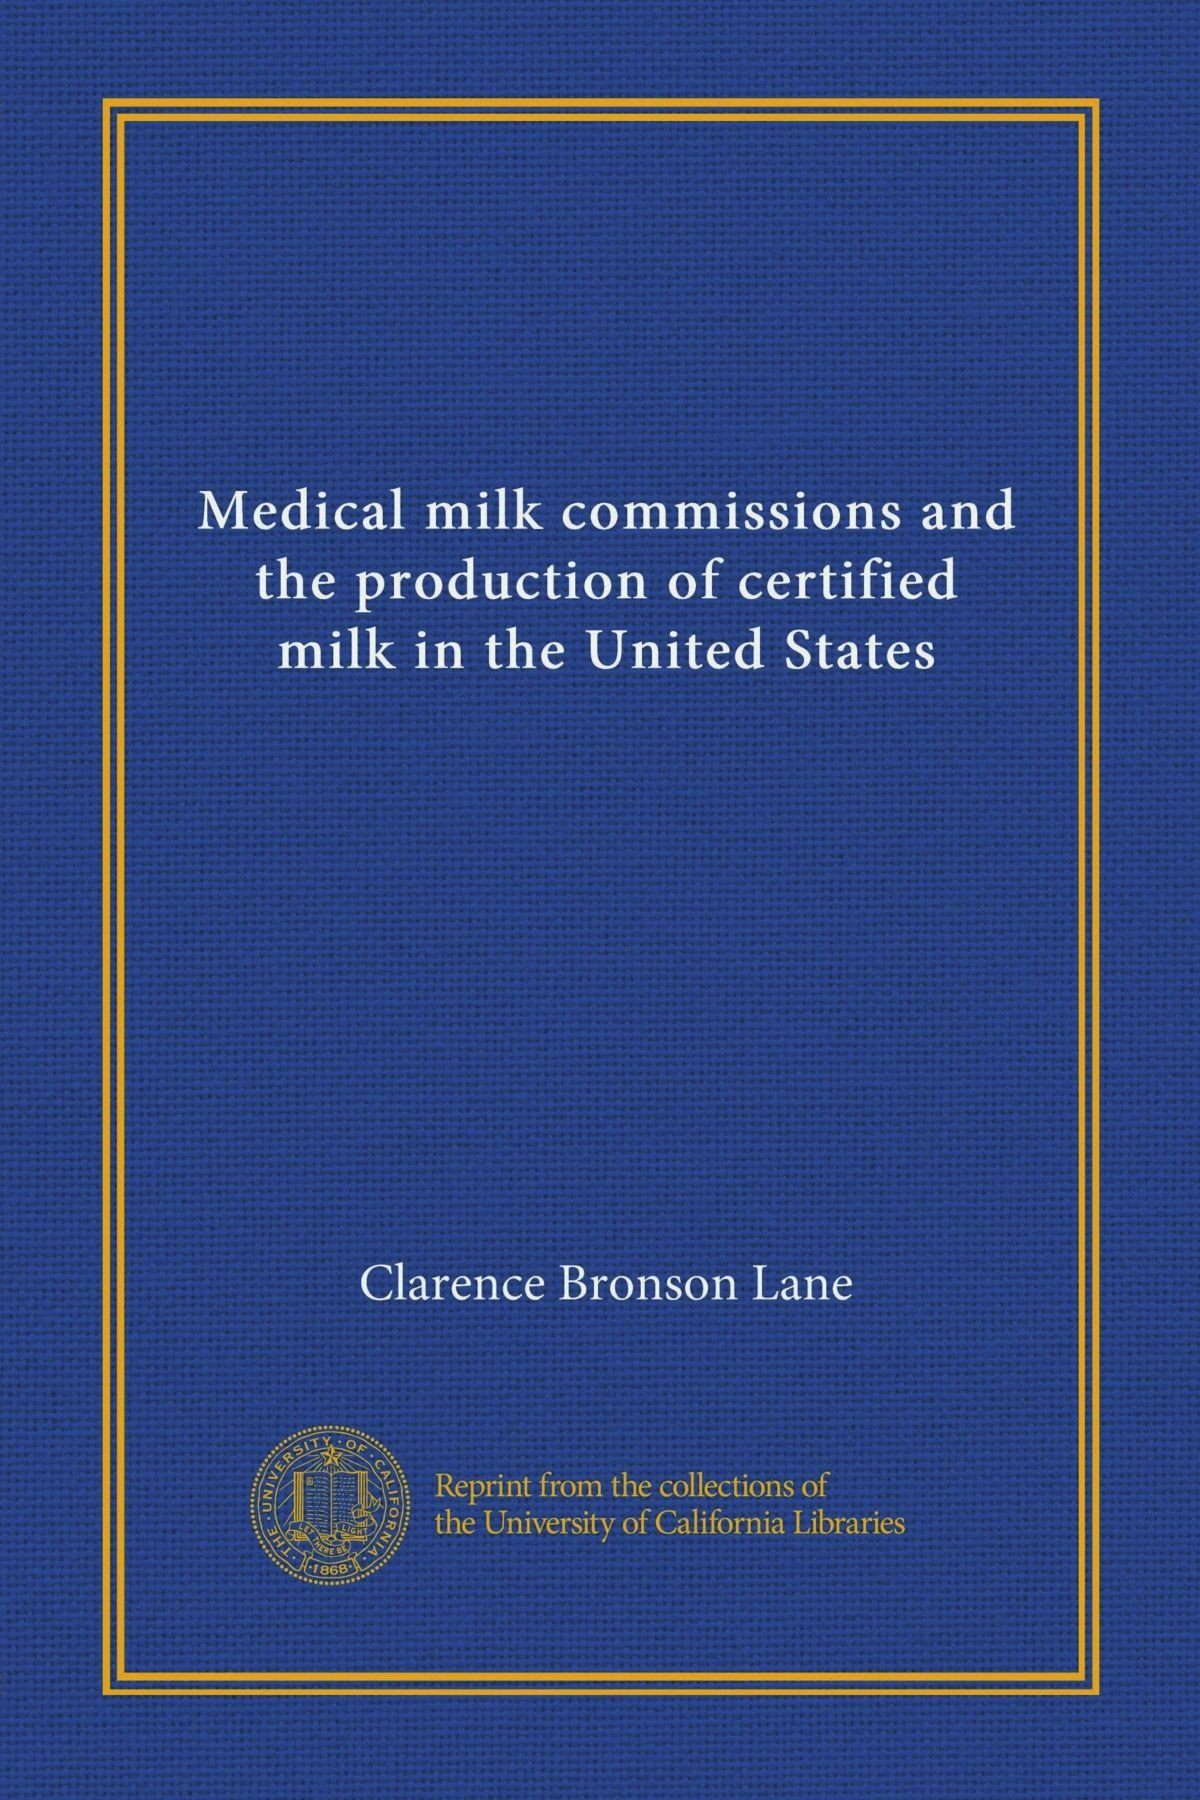 Download Medical milk commissions and the production of certified milk in the United States ebook